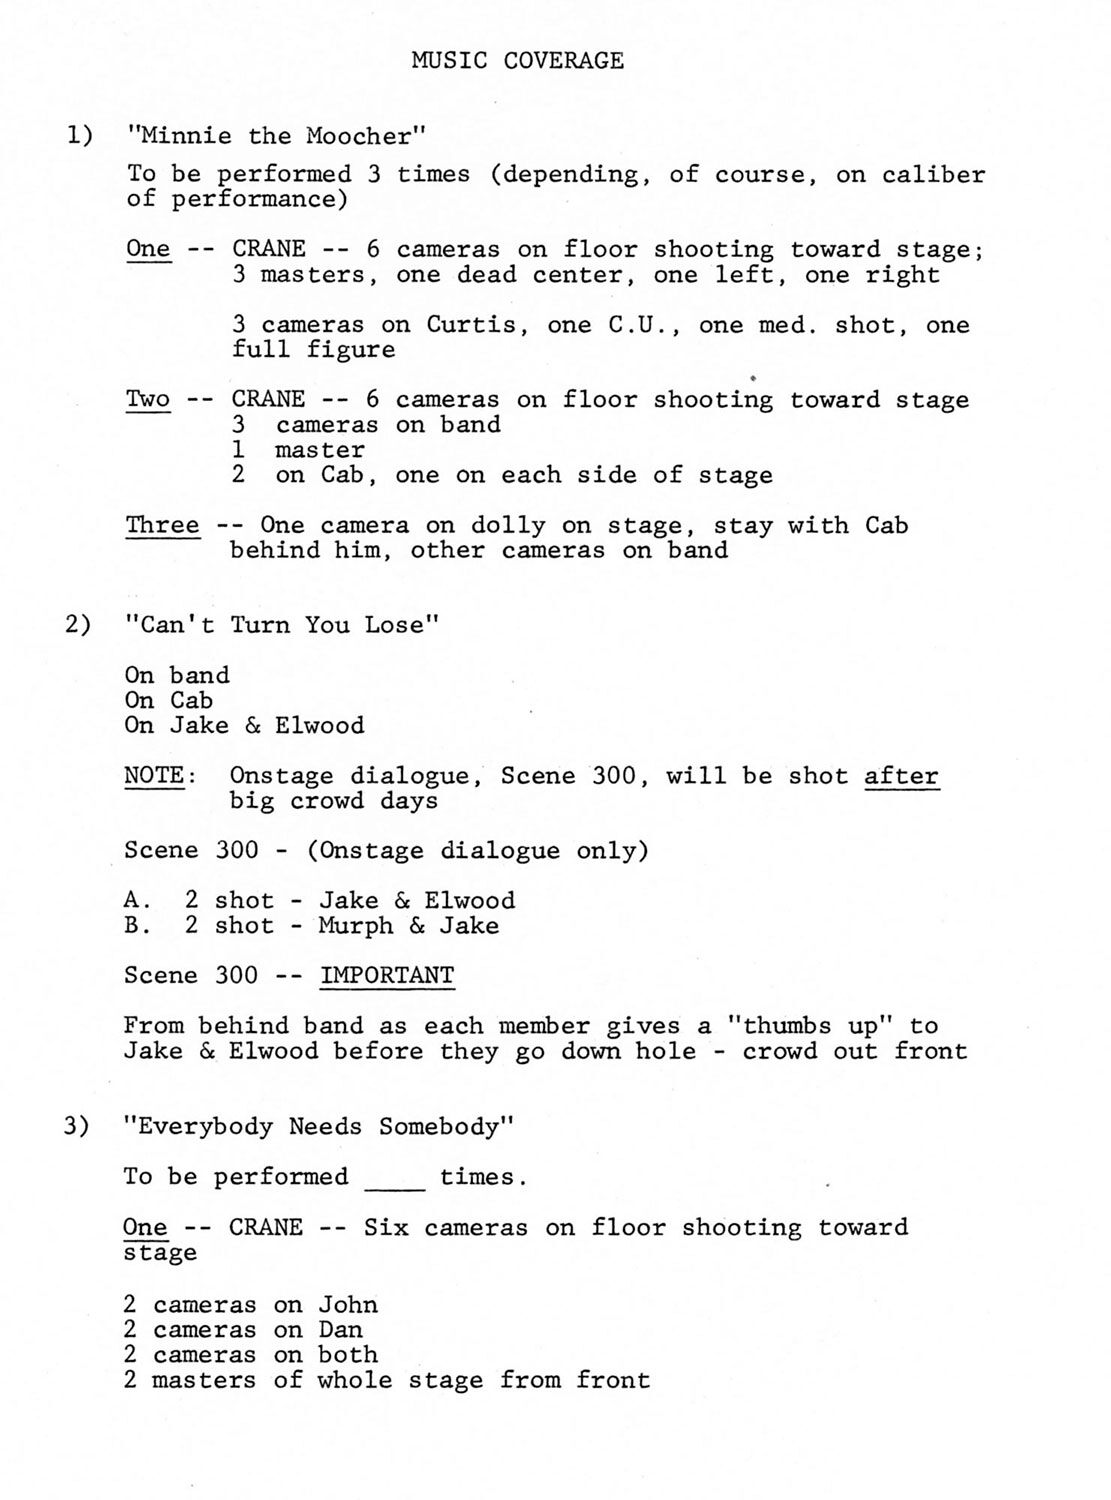 As seen in this music coverage breakdown, the performances in The Blues Brothers required multiple cameras and extensive equipment to achieve the required amount of coverage.